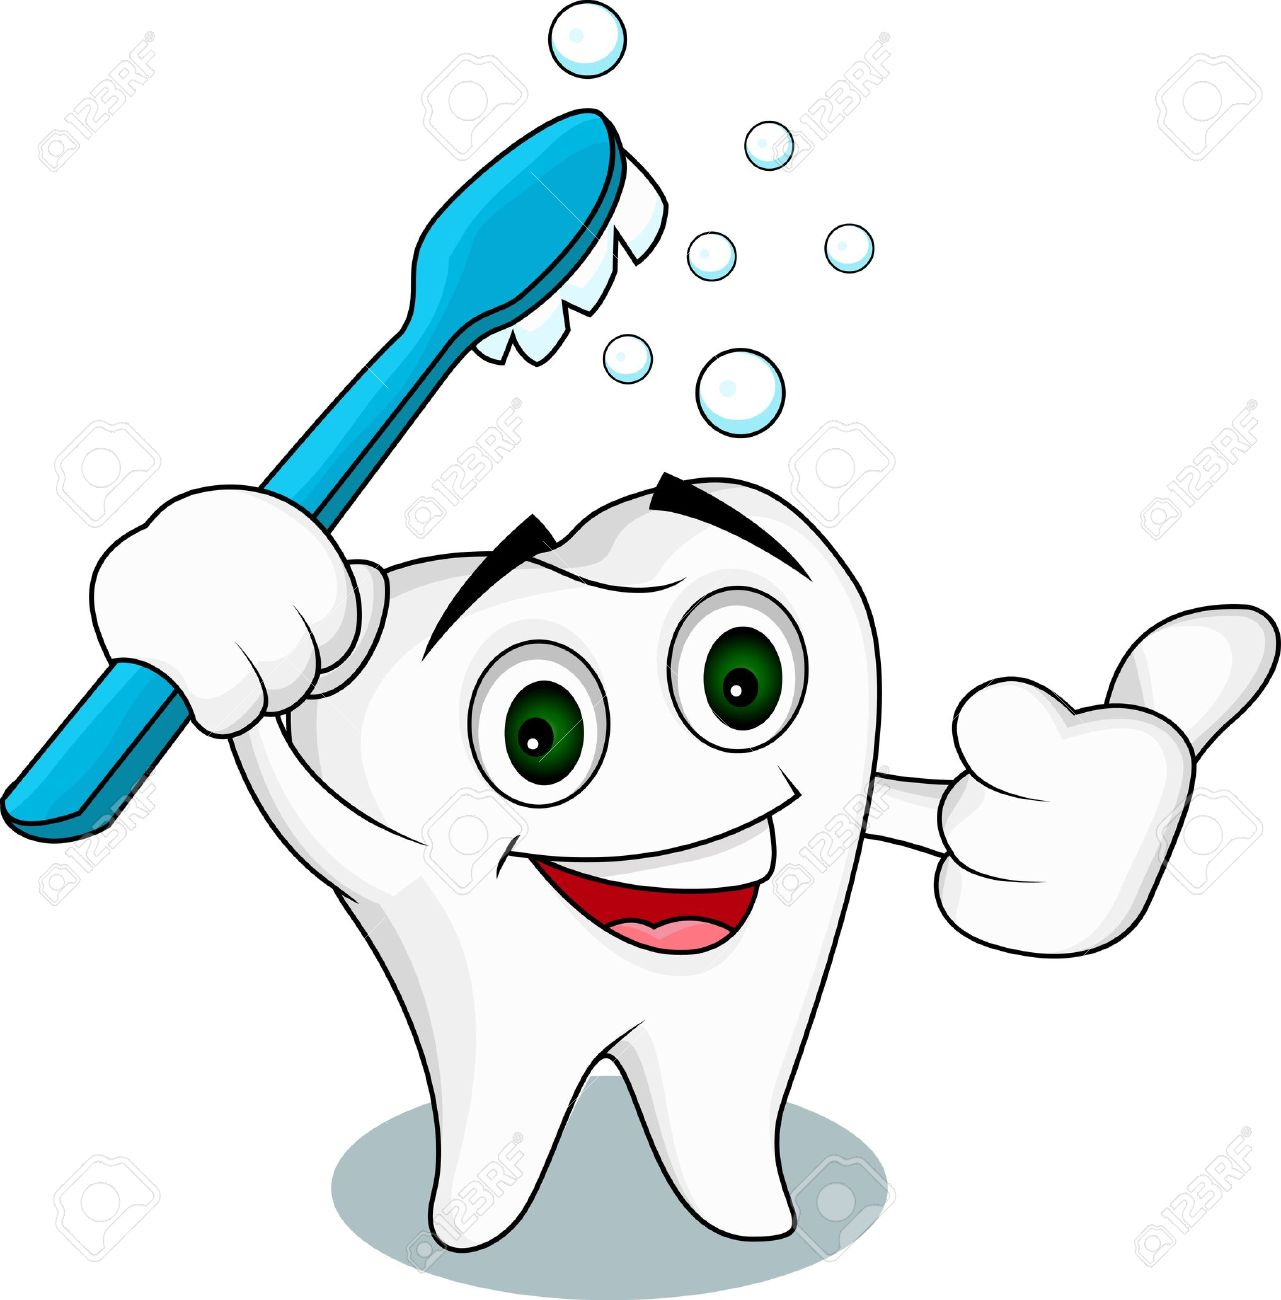 Tooth cartoon character Stock Vector - 14508838